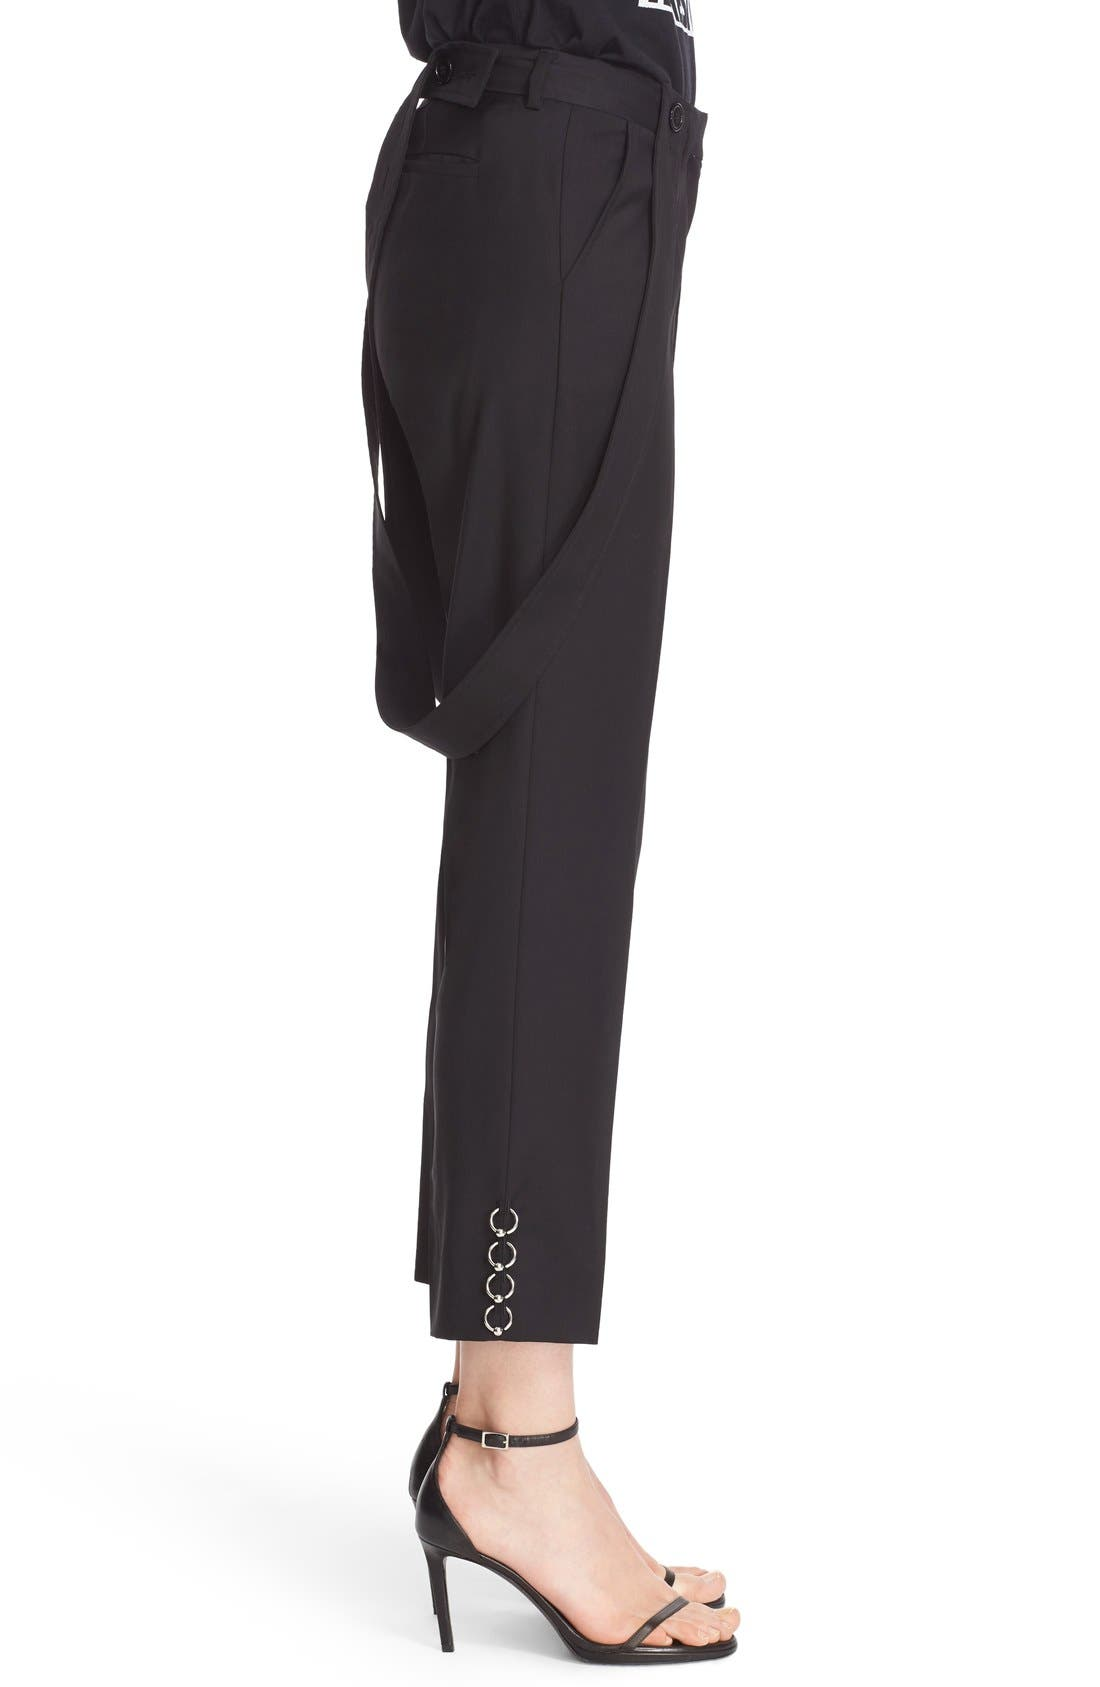 ASHLEY WILLIAMS,                             'Piercing' Wool Ankle Pants with Detachable Suspenders,                             Alternate thumbnail 3, color,                             001